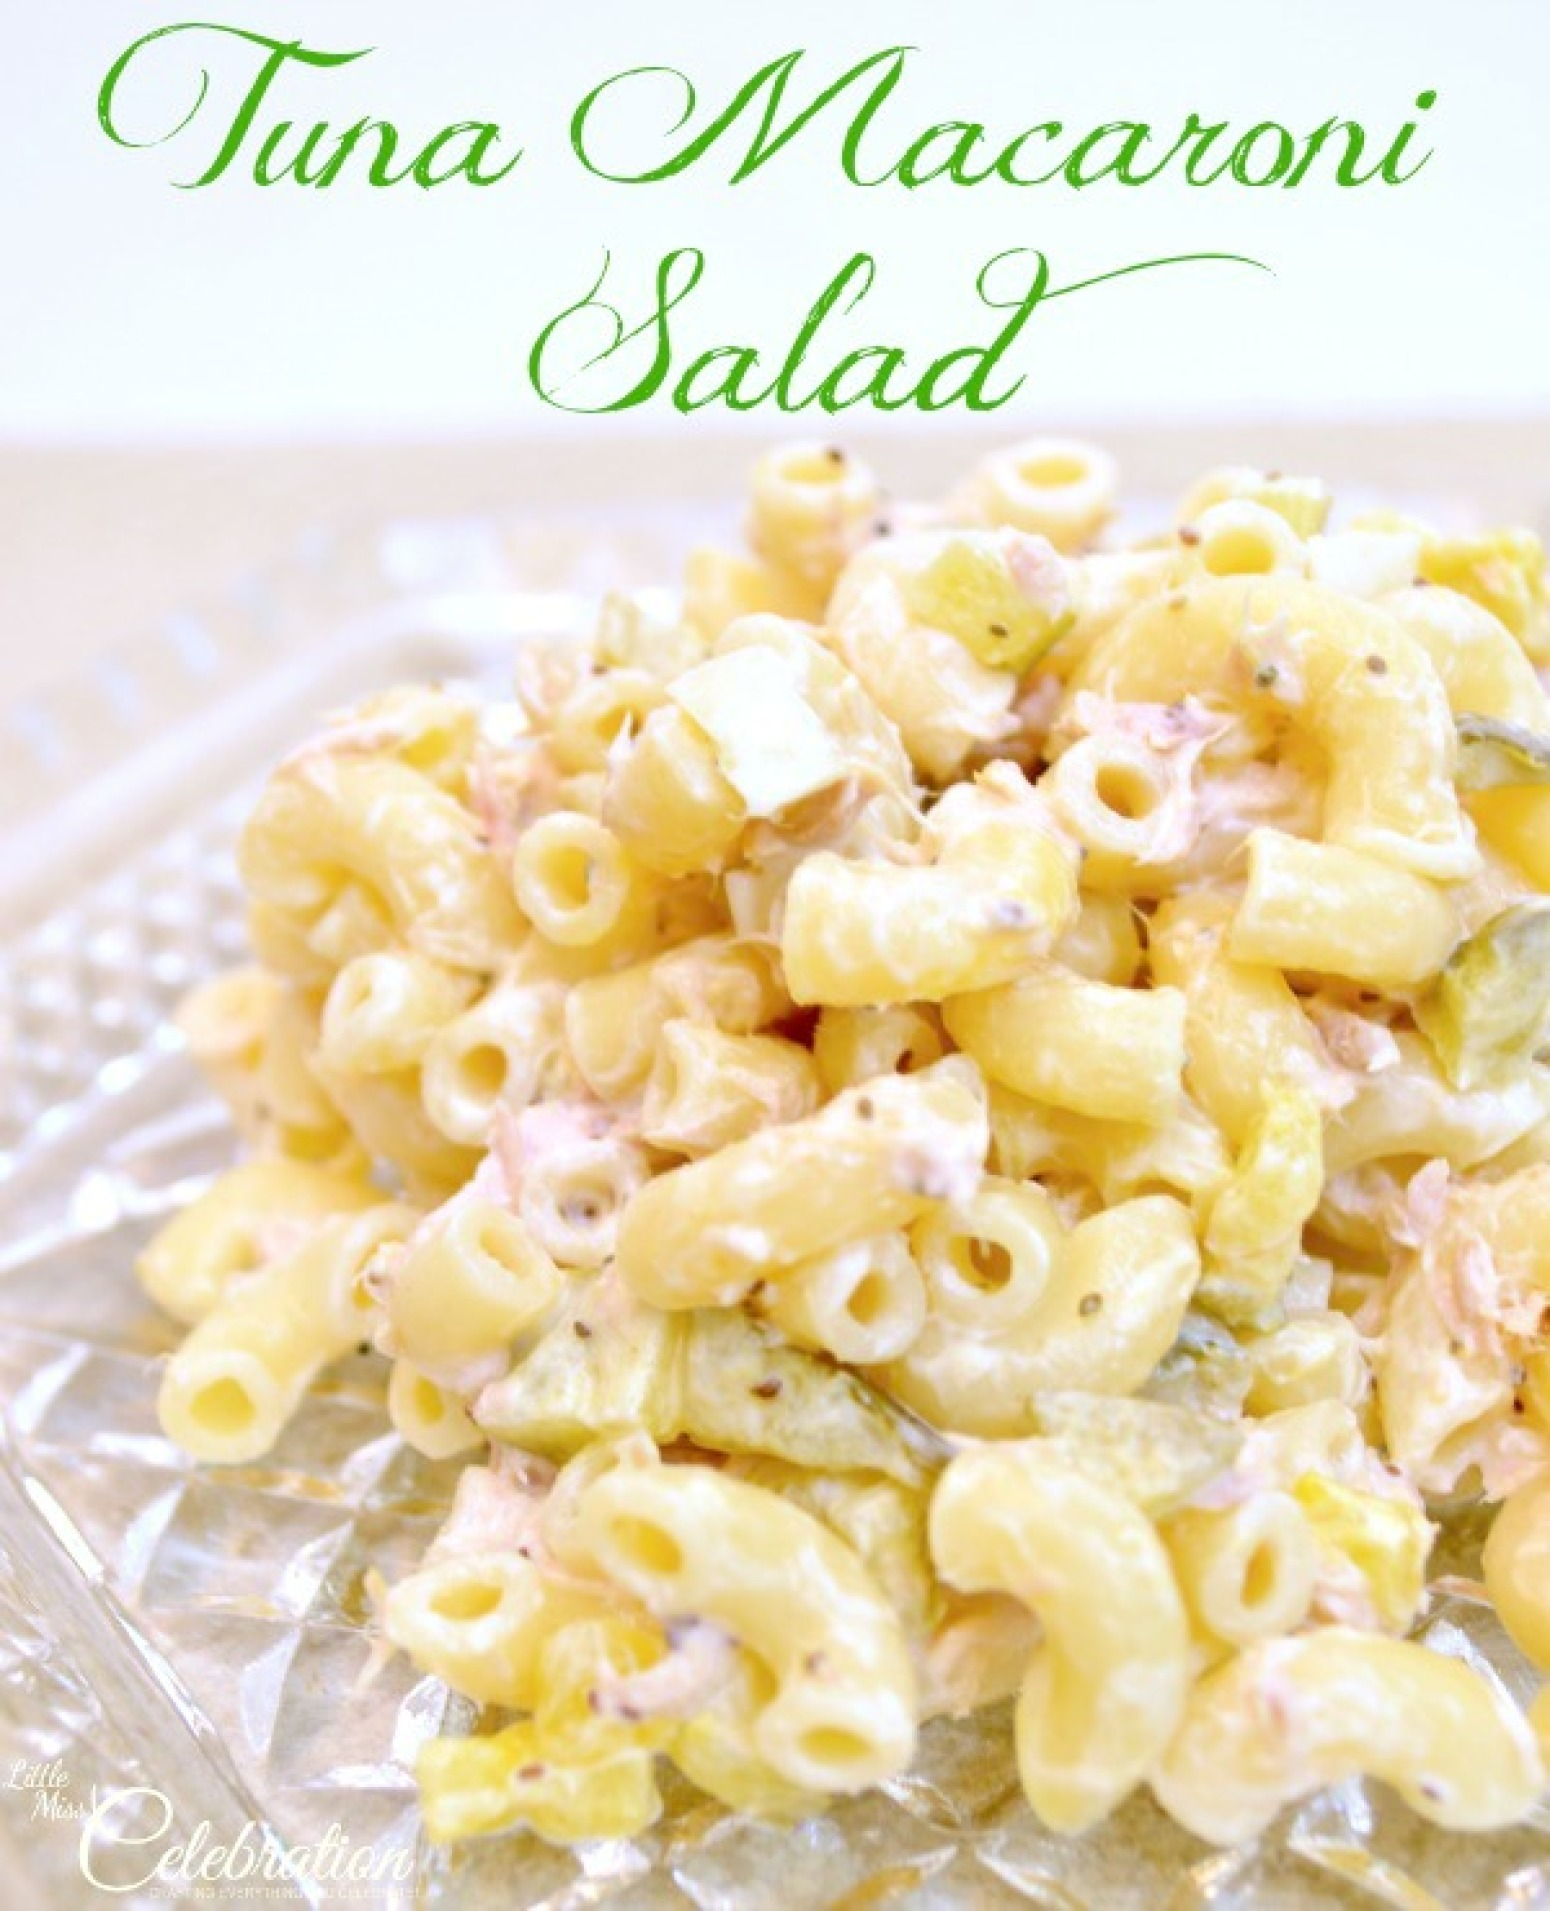 Tuna Macaroni Salad Recipe 7 | Just A Pinch Recipes